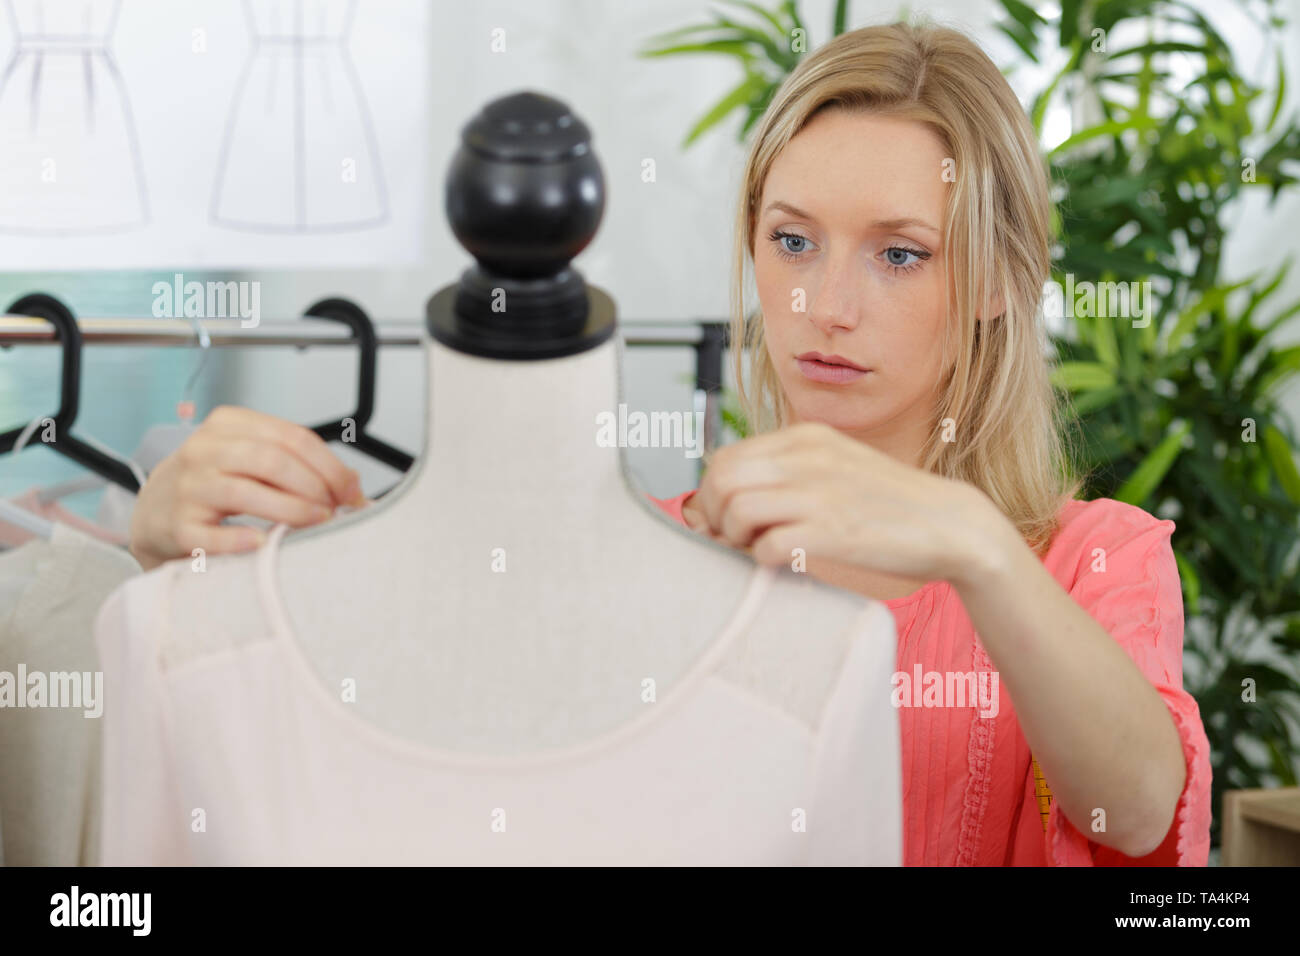 woman tailor working on new clothing - Stock Image